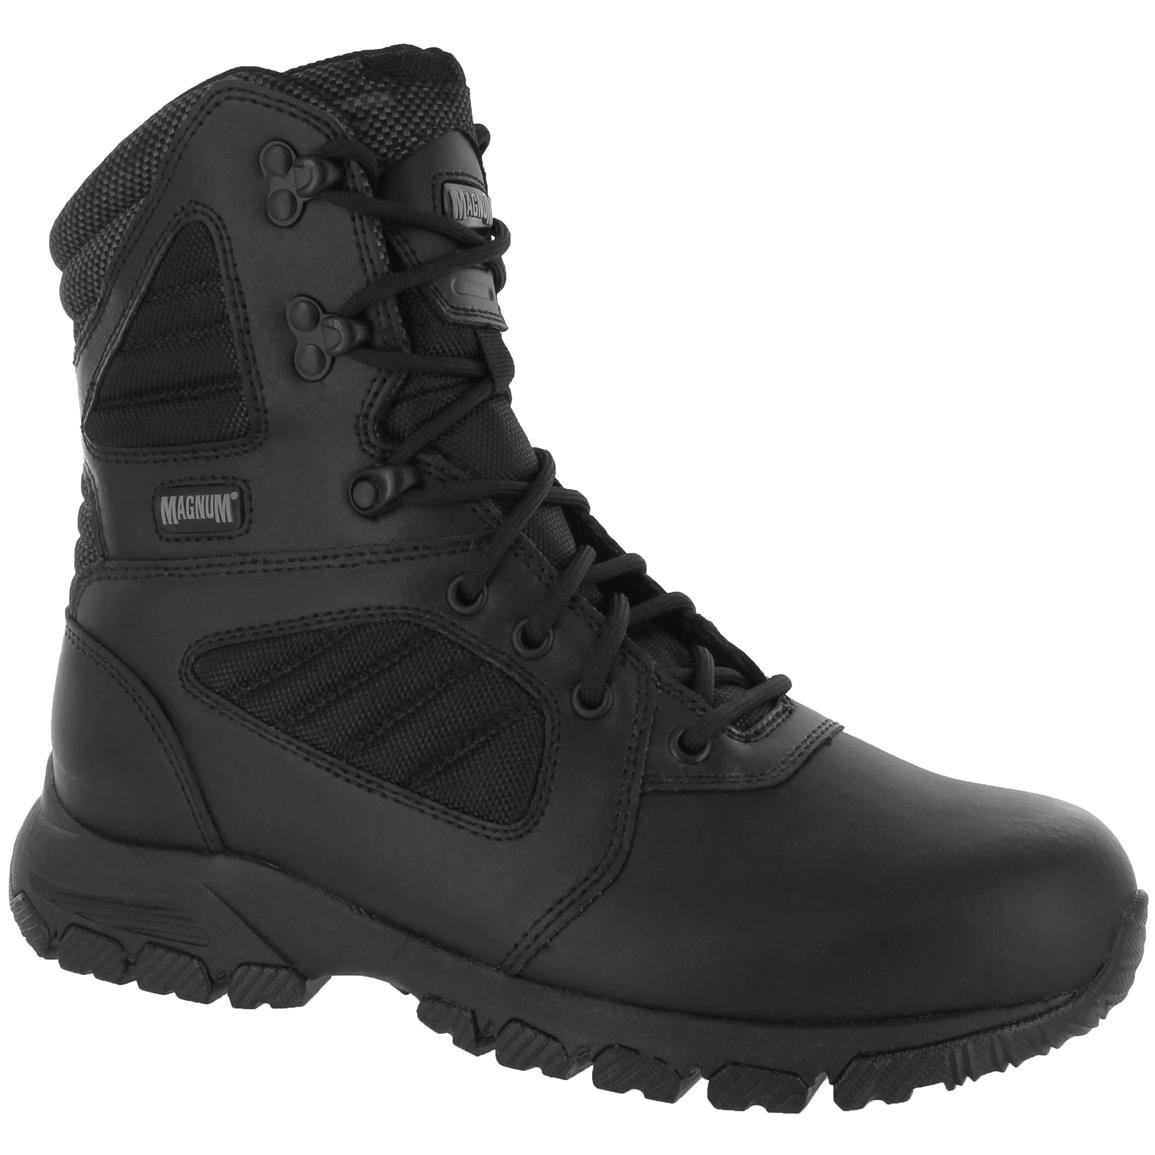 Magnum Response III 8.0 Men's Steel Toe EMS Tactical Boots, Black